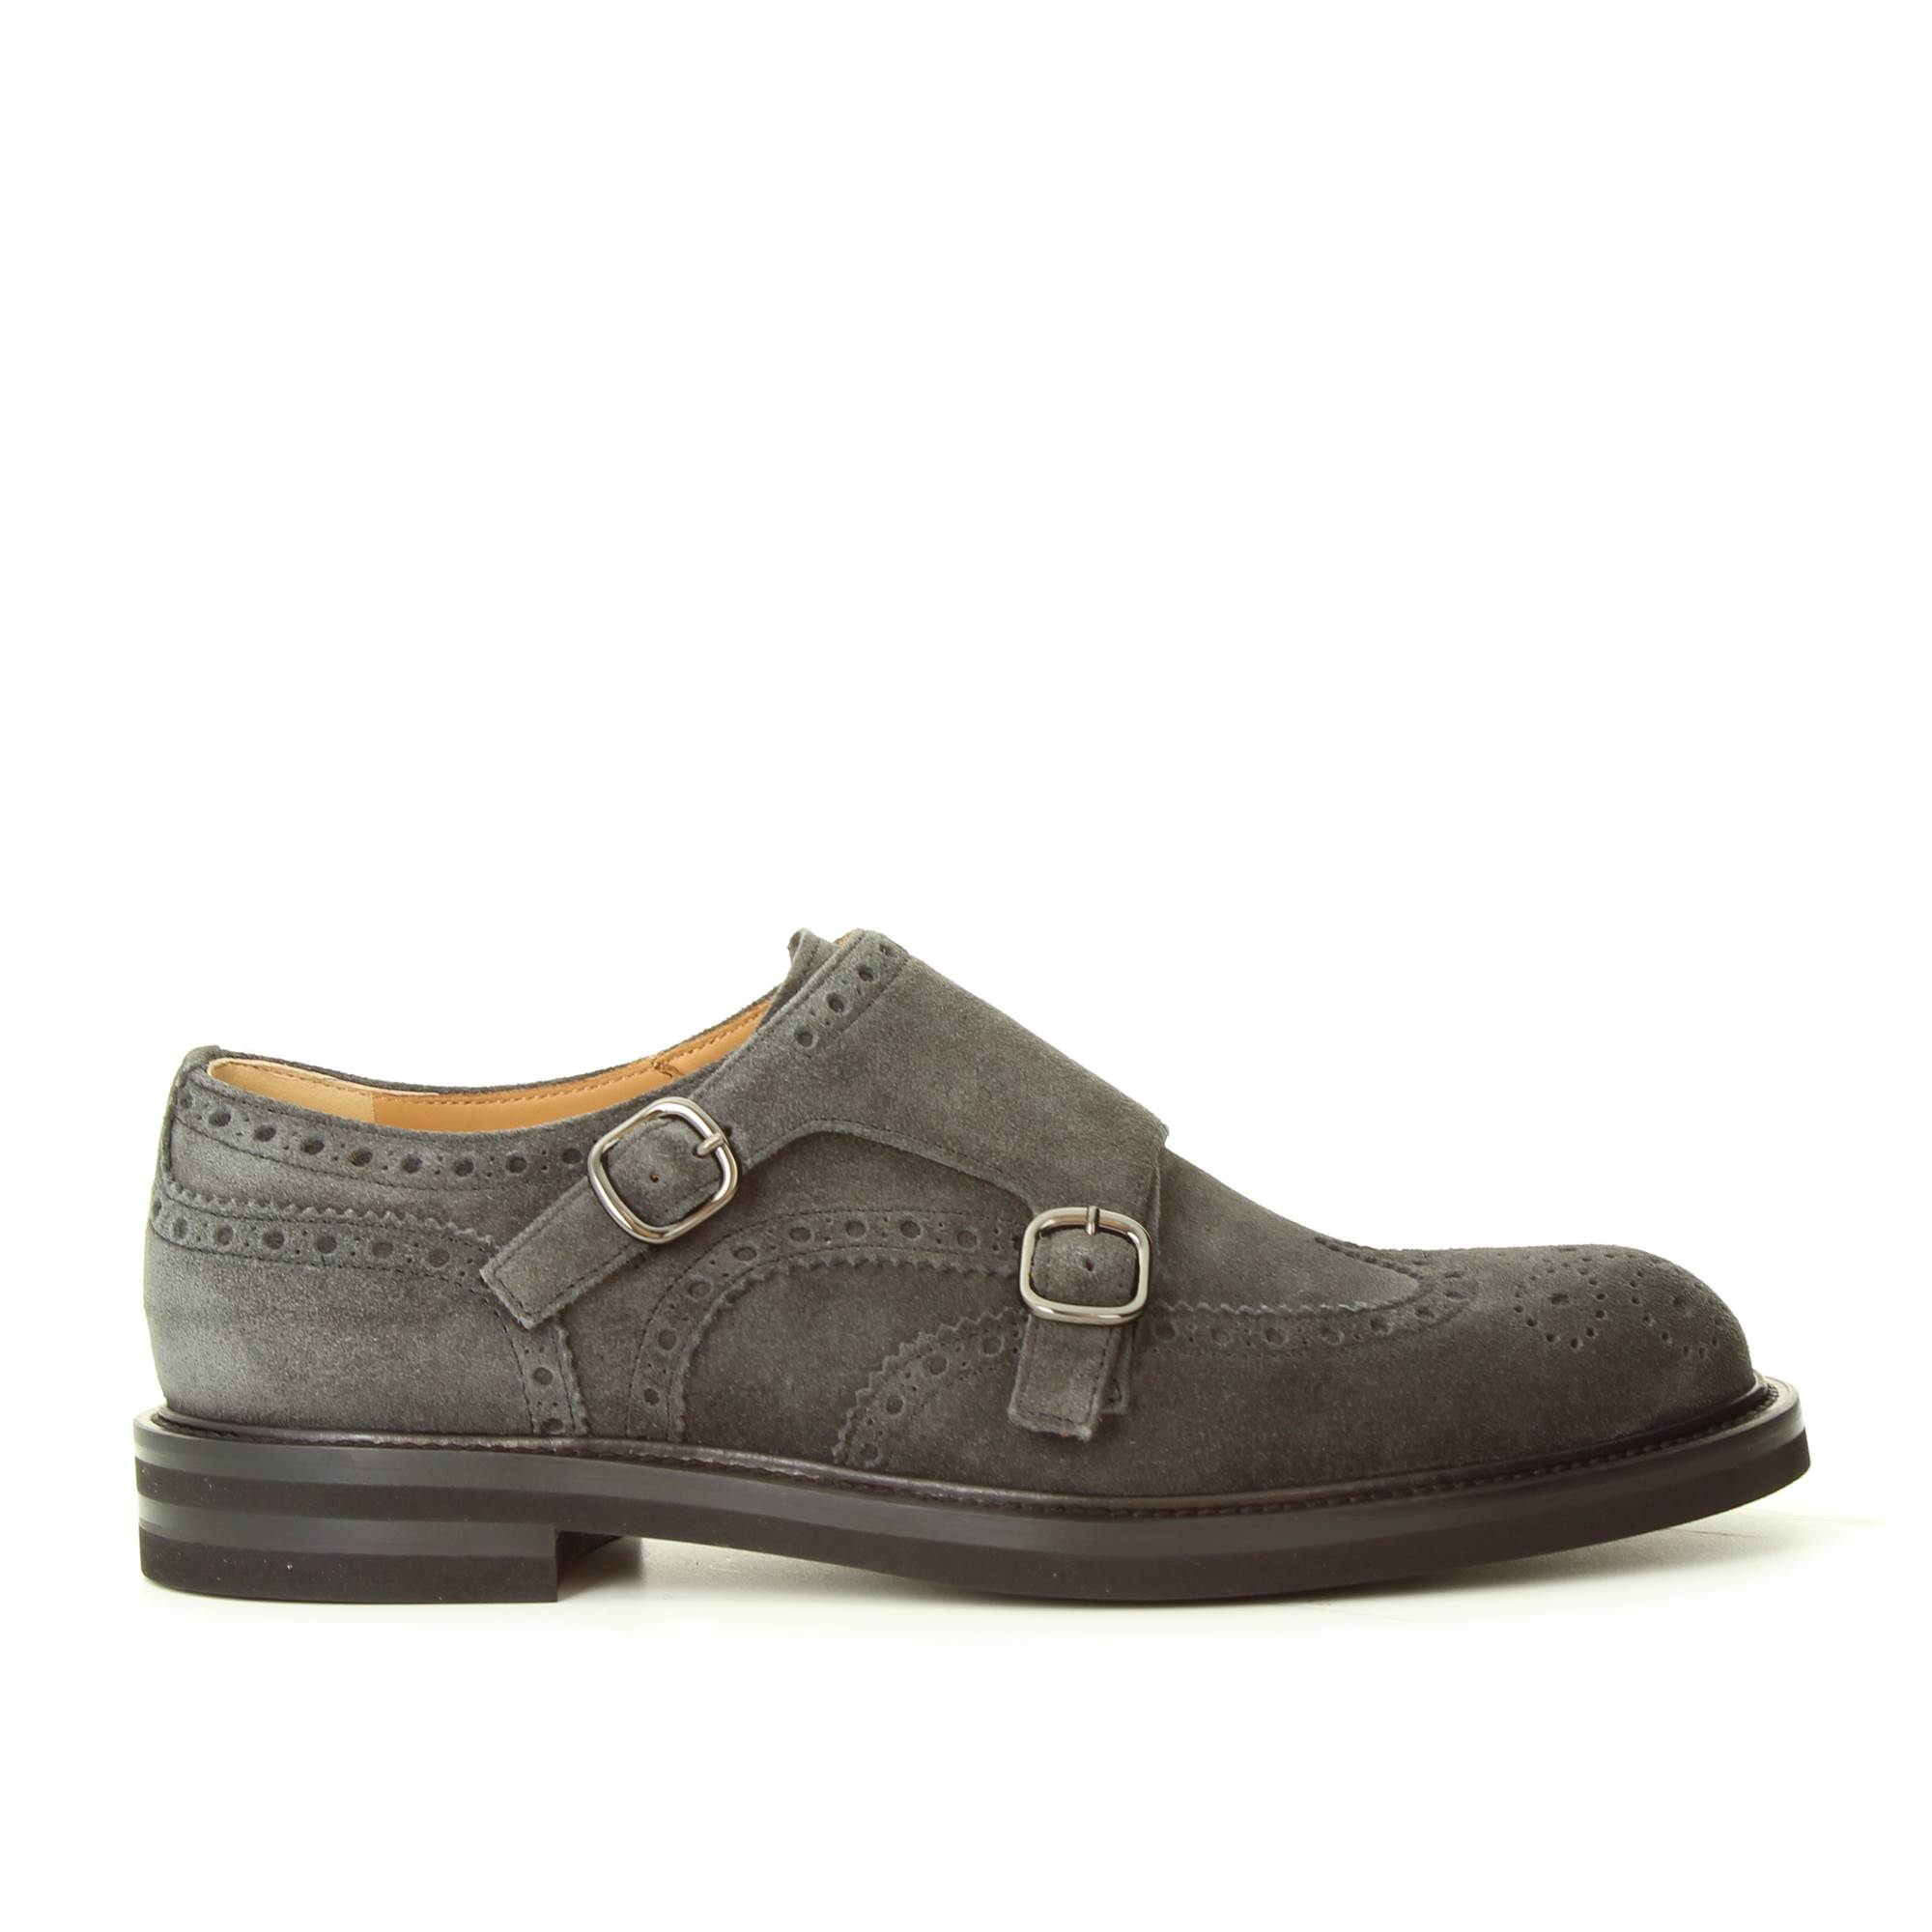 LANCIOTTI DE VERZI 1016RM ANTRACITE Shoes Man DOUBLE BUCKLE